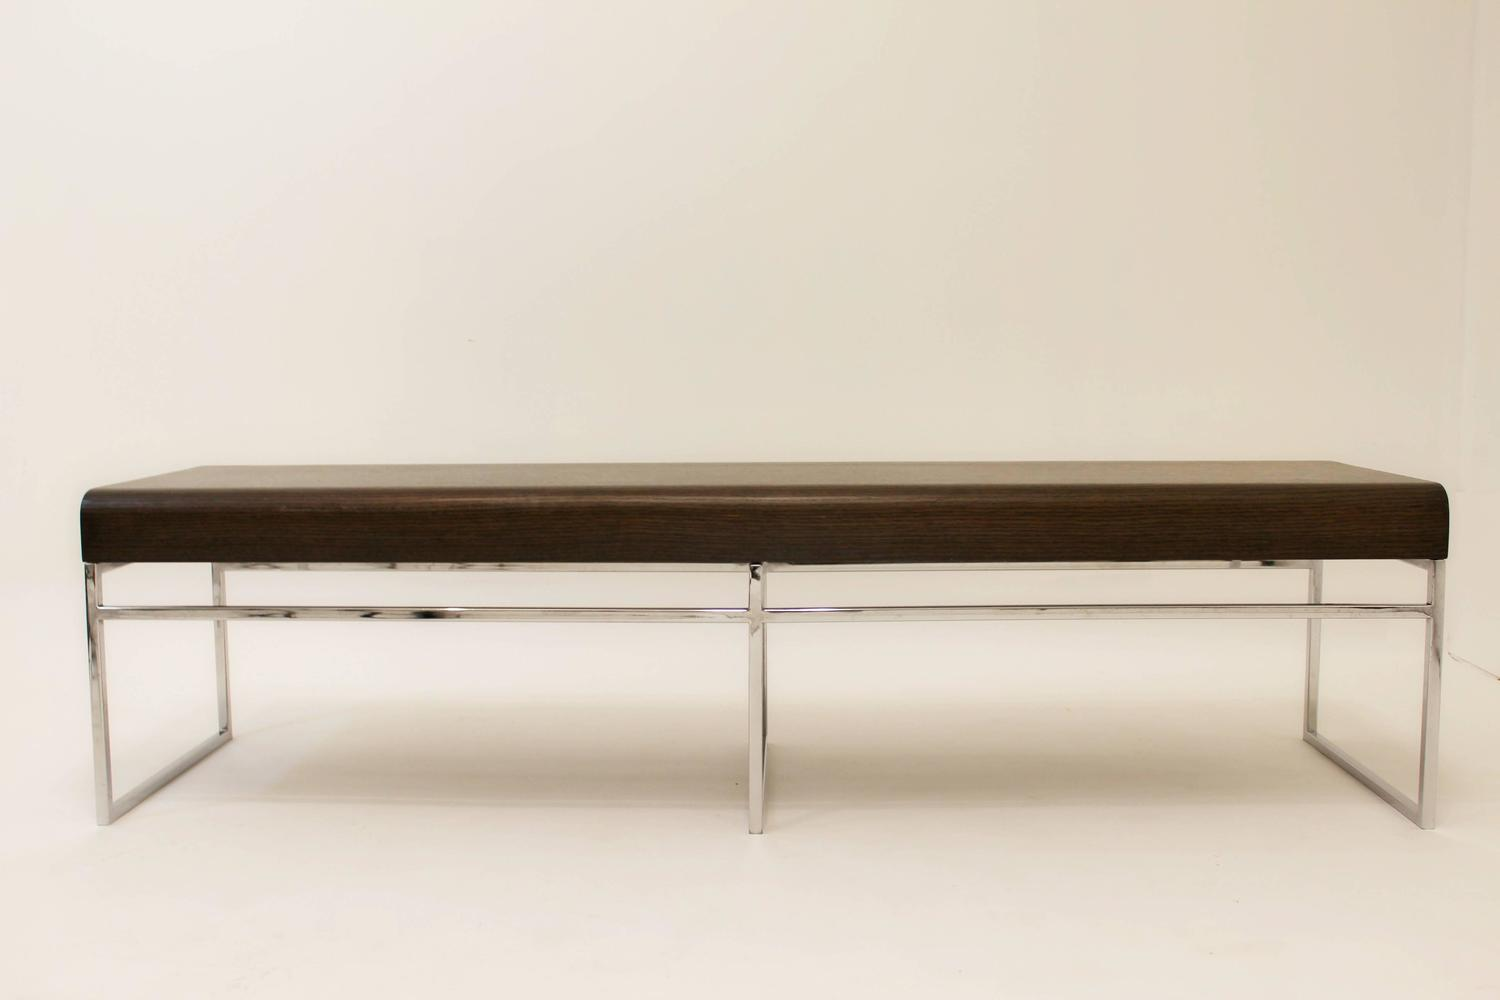 Maxalto Collection Elios B B Italia By Citterio Elois Bench Coffee Table At 1stdibs